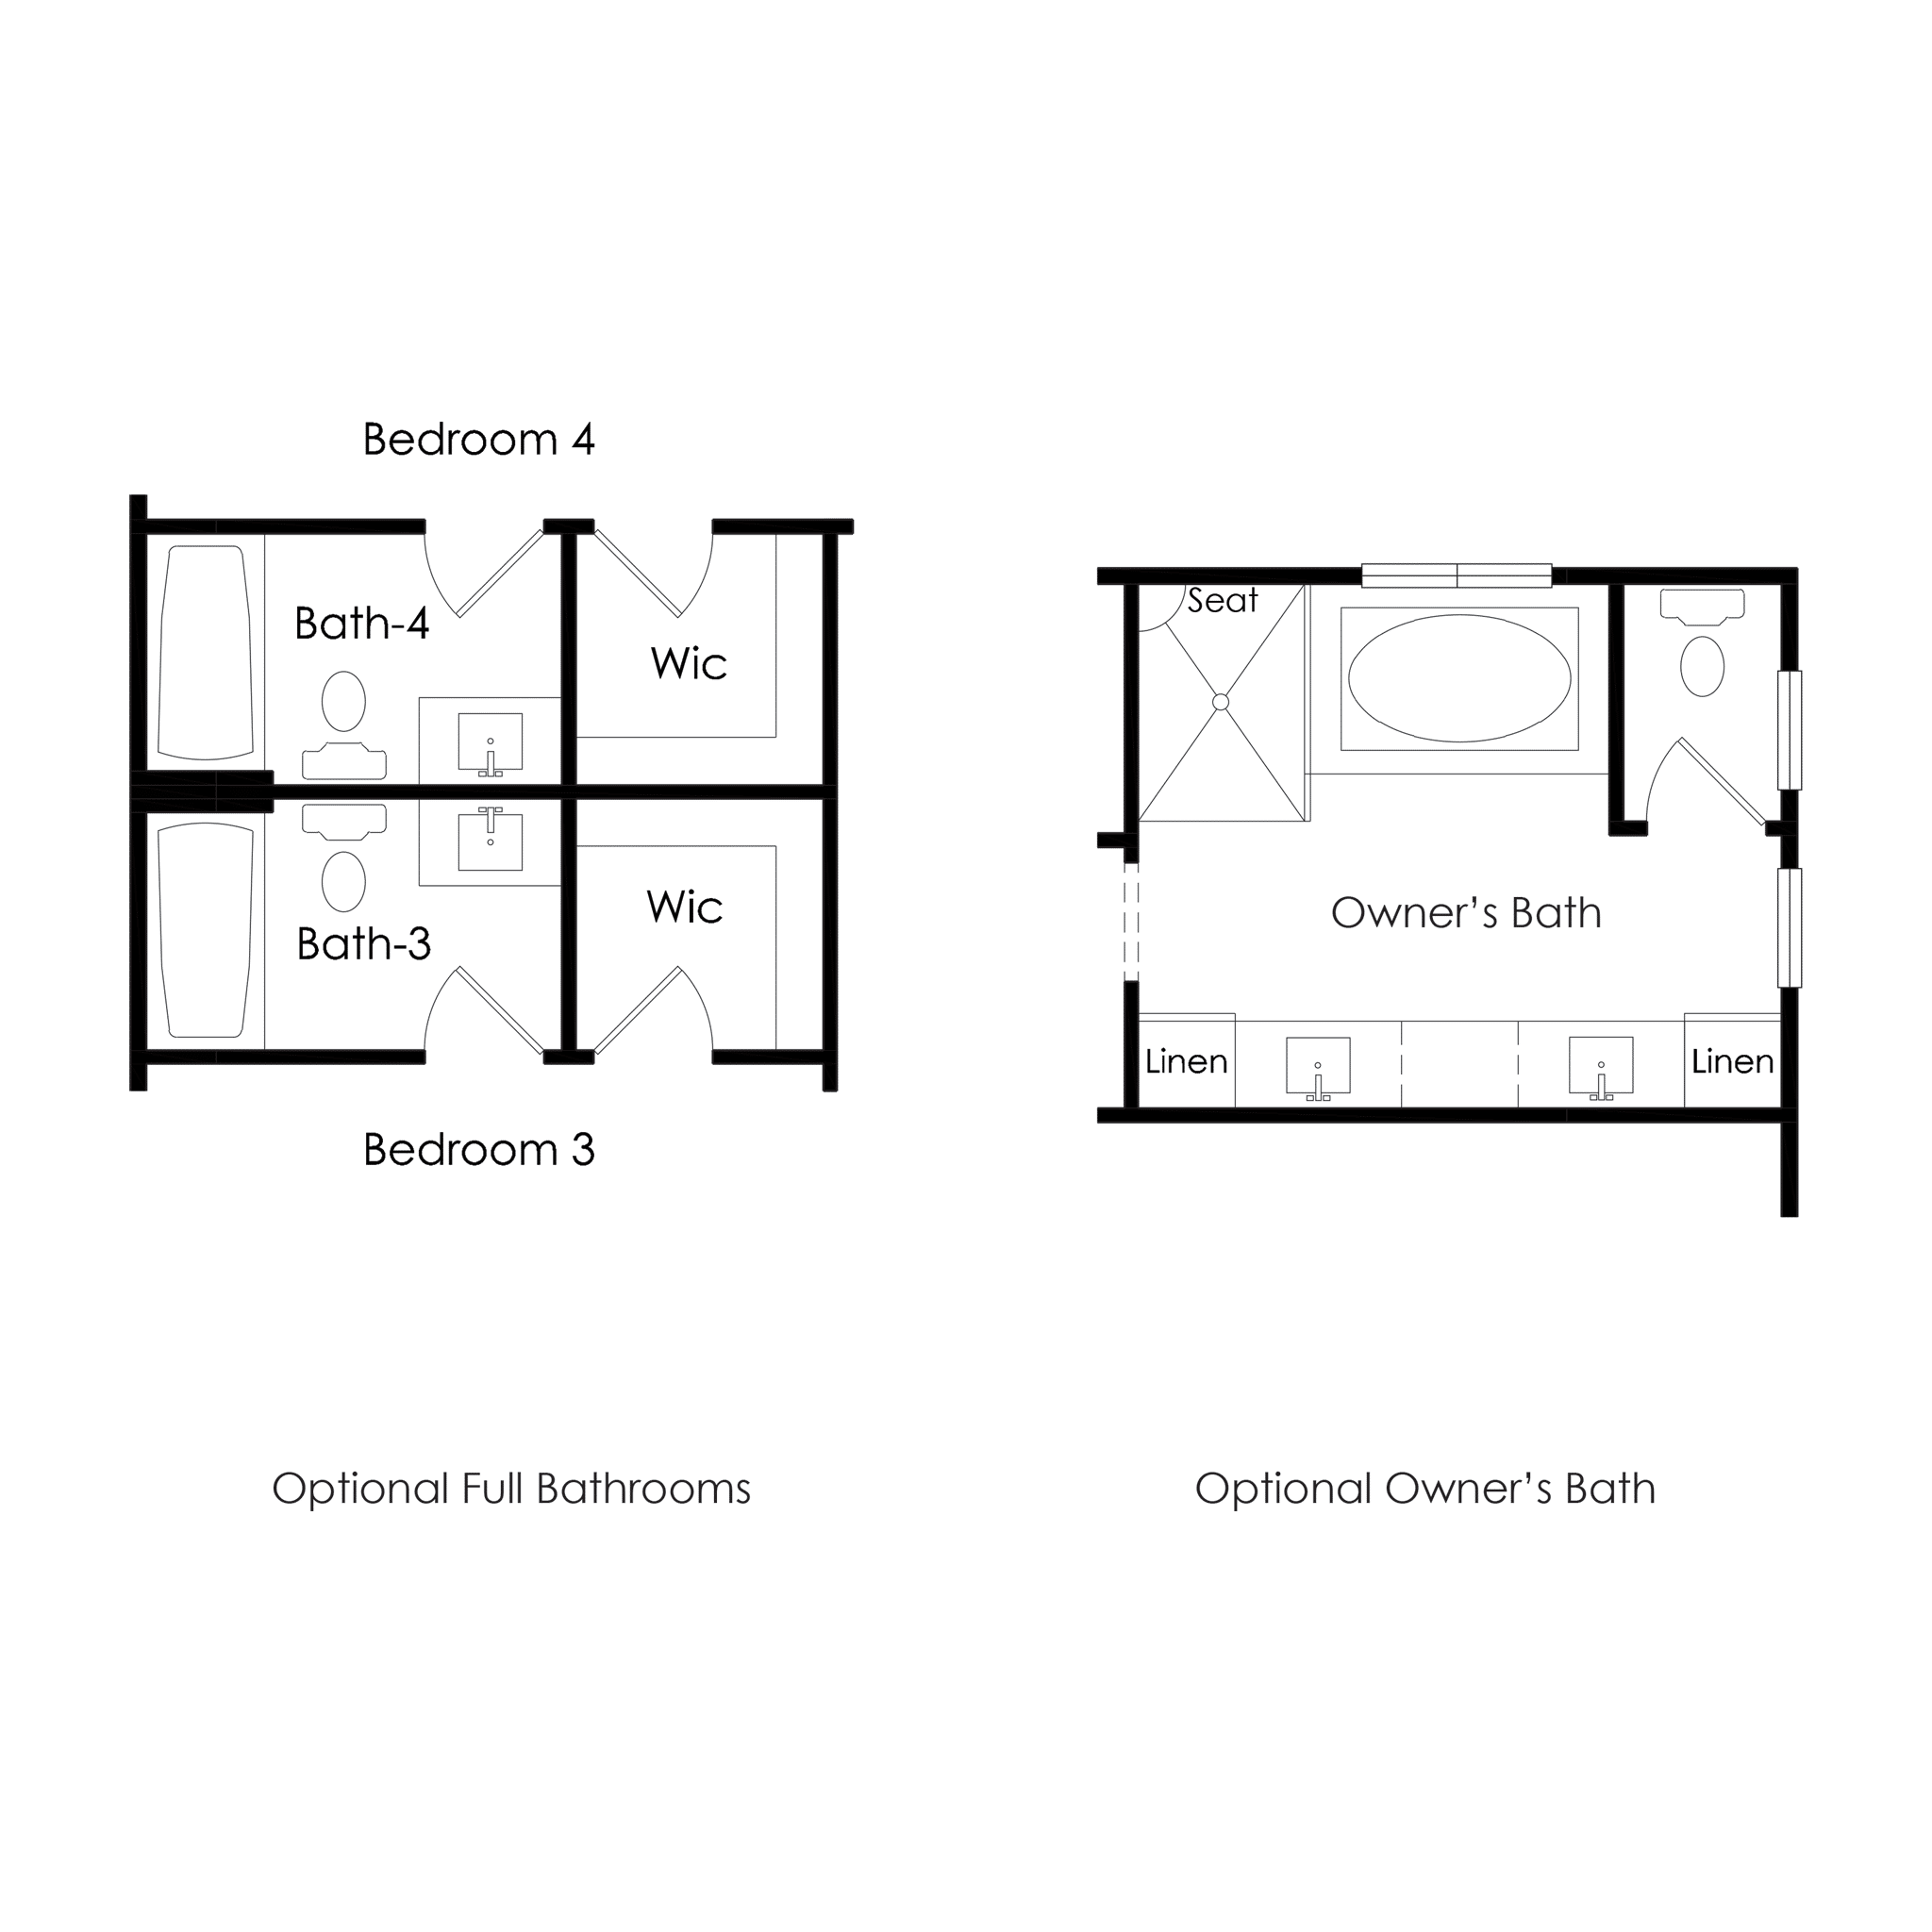 Second Floor – Optional Bathrooms